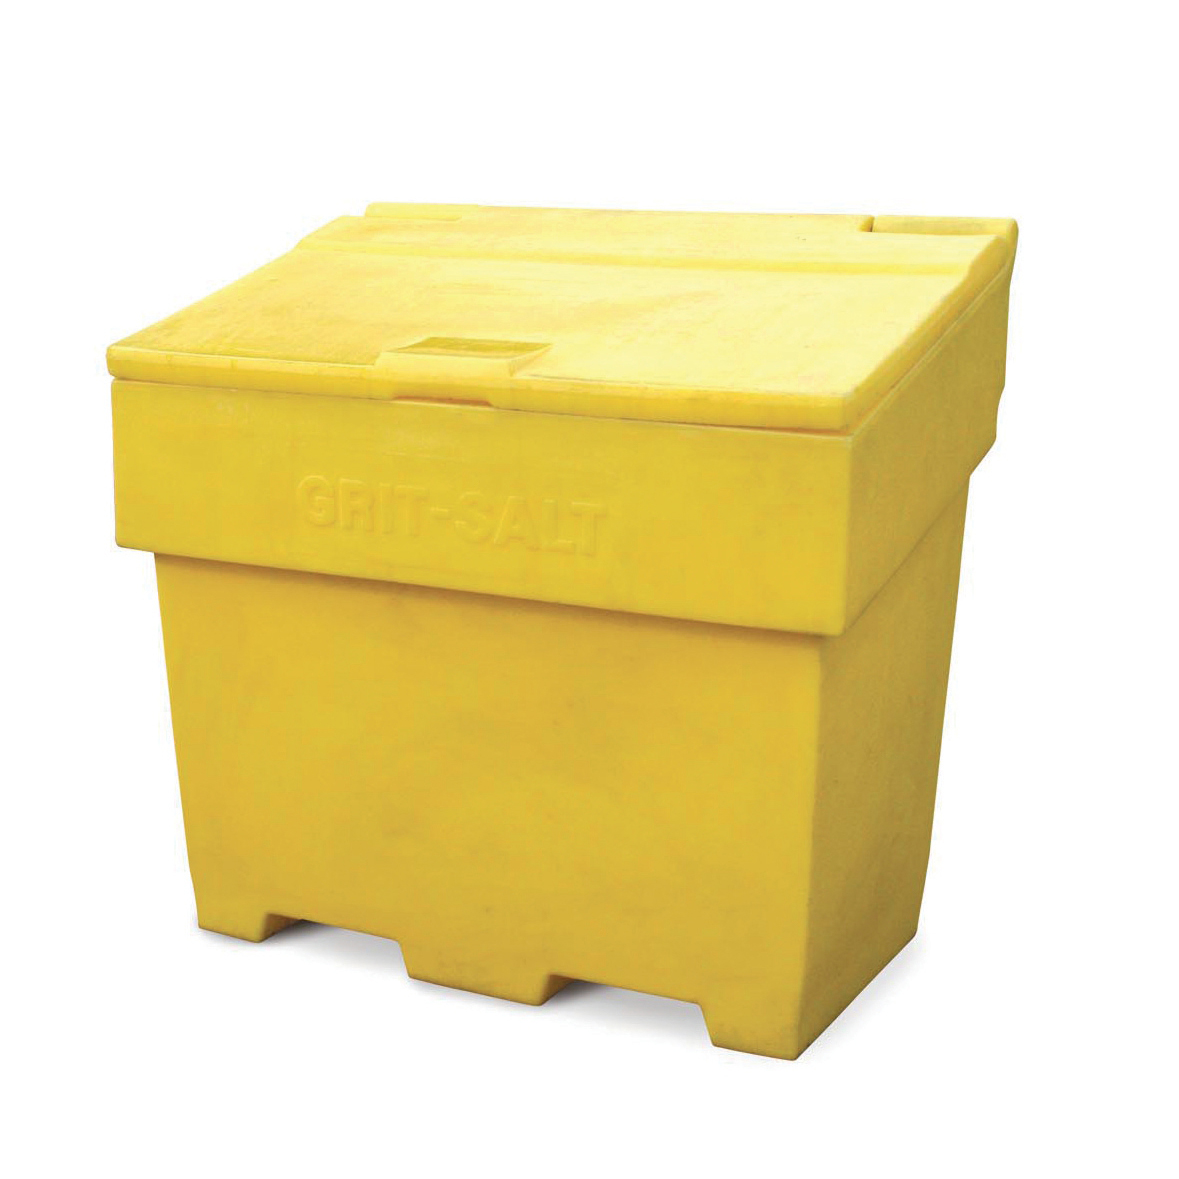 Bentley Grit and Salt Bin Polyethylene Capacity 400kg Weight 22kg Ref SPC/GRIT400